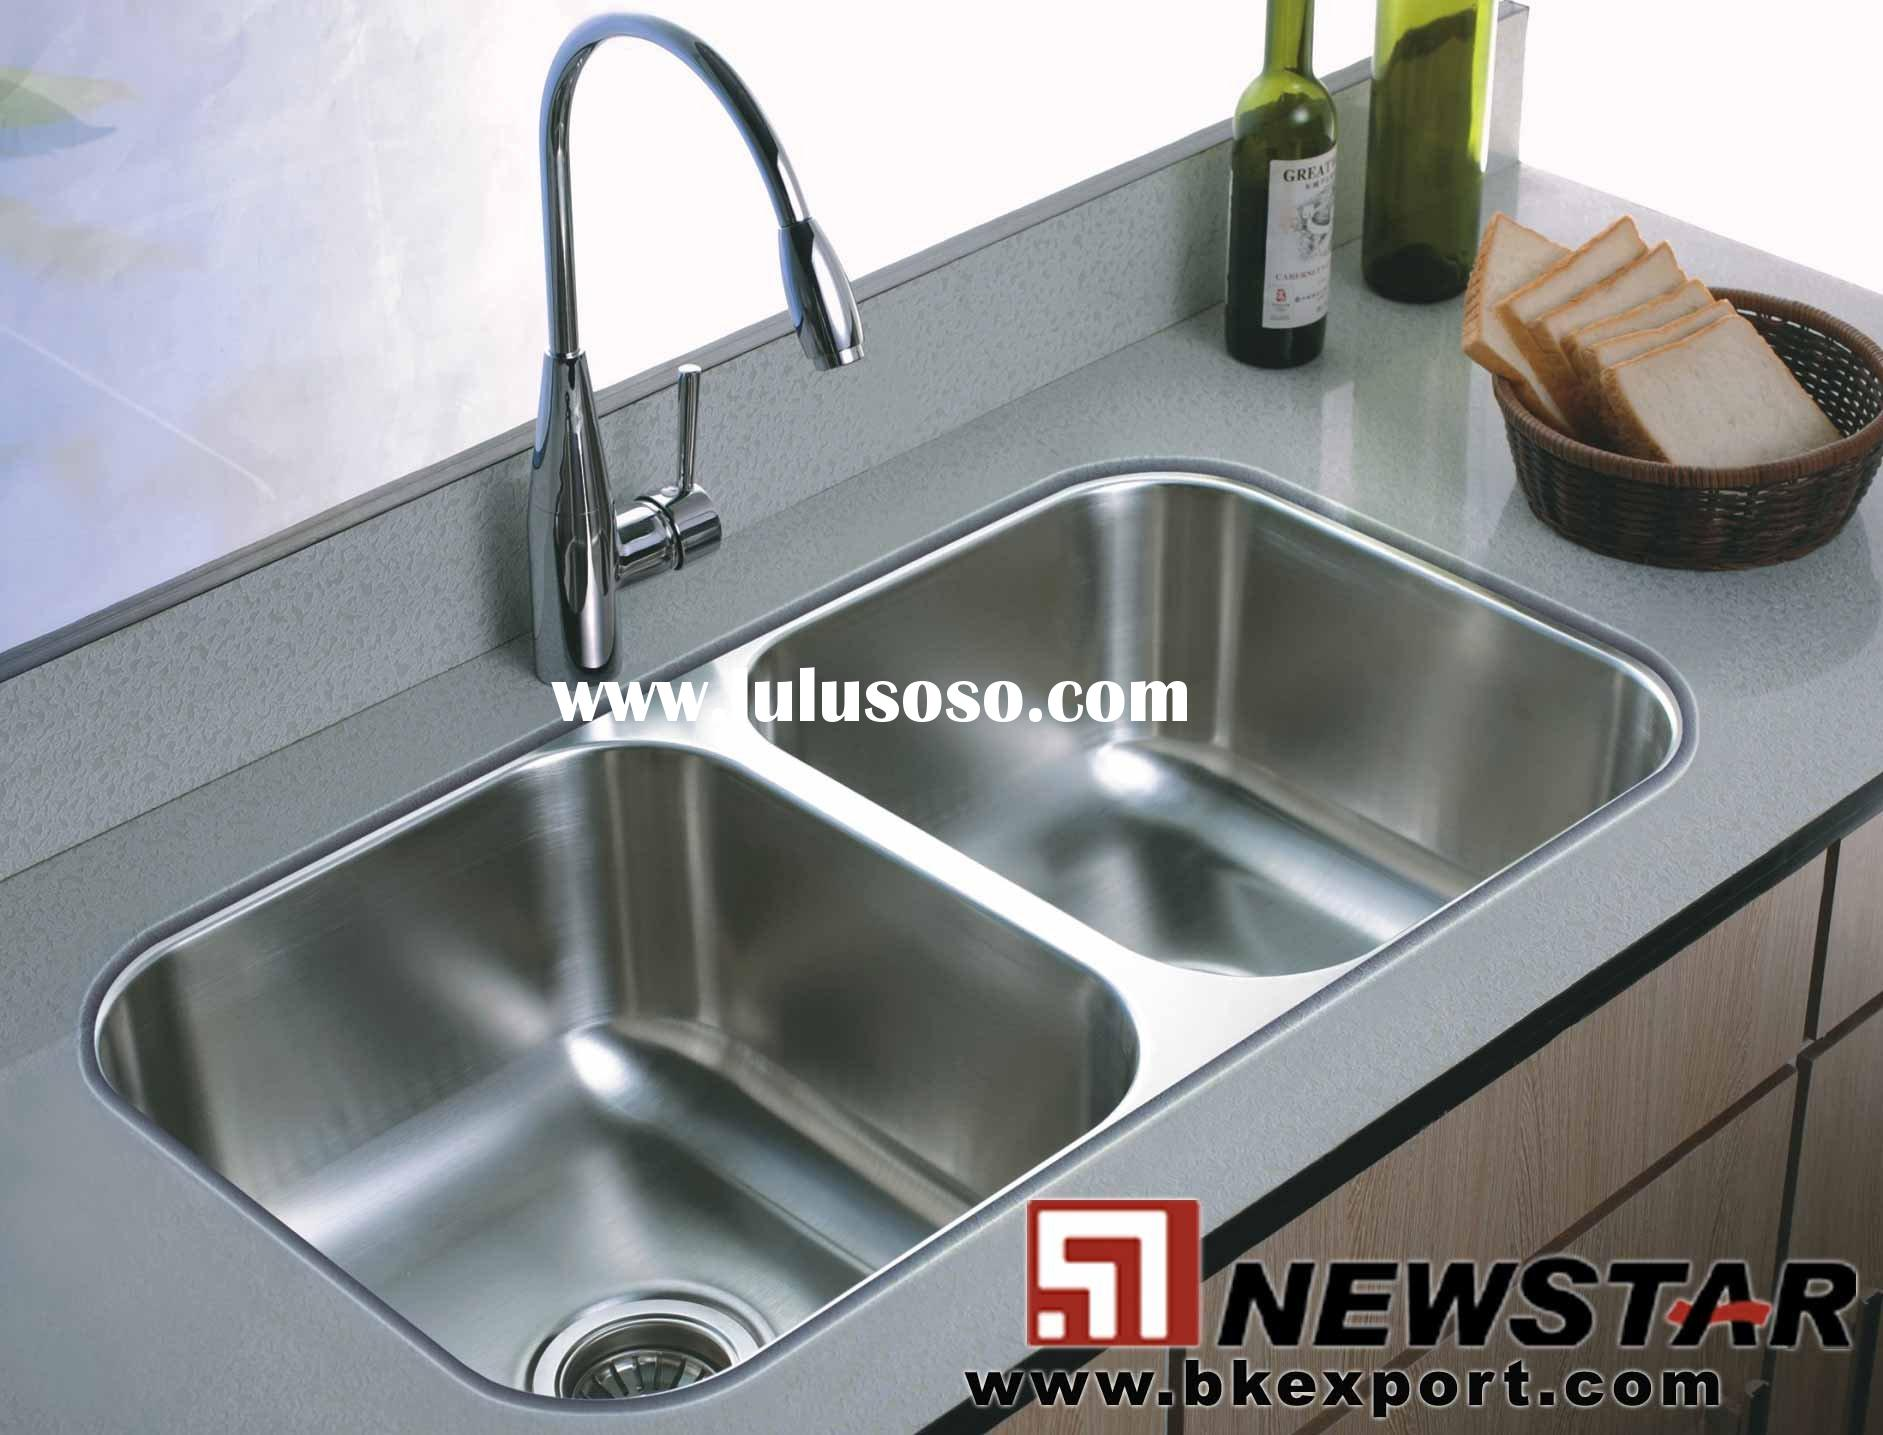 Stainless Steel Sinks With Faucets ( Undermount Double Bowl Sink )